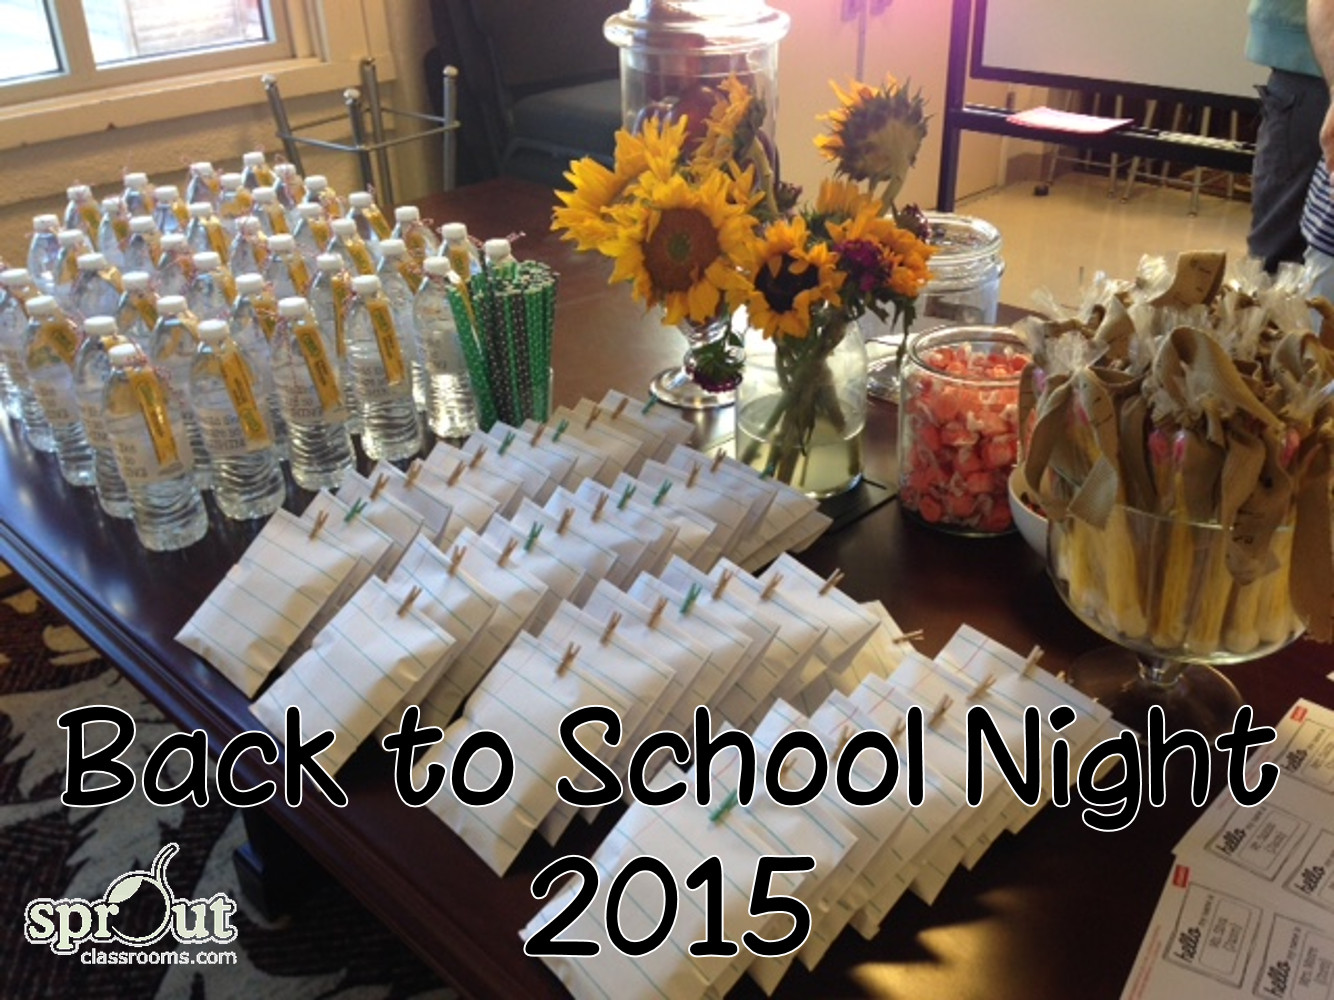 Back To School Night Ideas  Back to School Night 2015 Sprout Classrooms